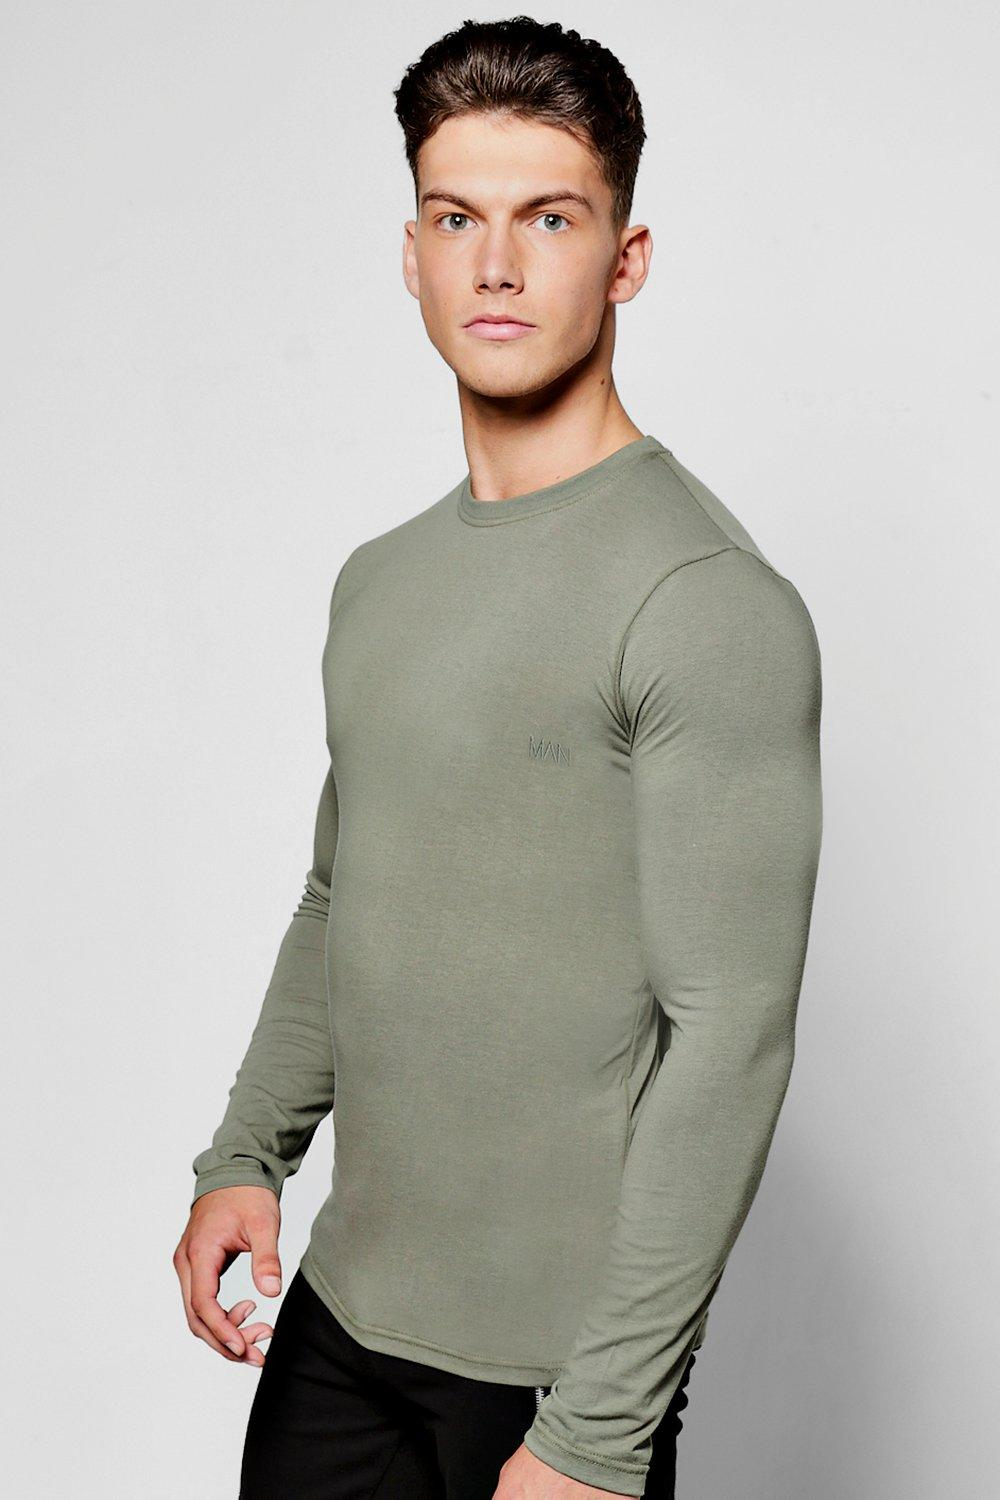 e7c9965d Mens Khaki Long Sleeve Muscle Fit T Shirt With MAN Logo. Hover to zoom